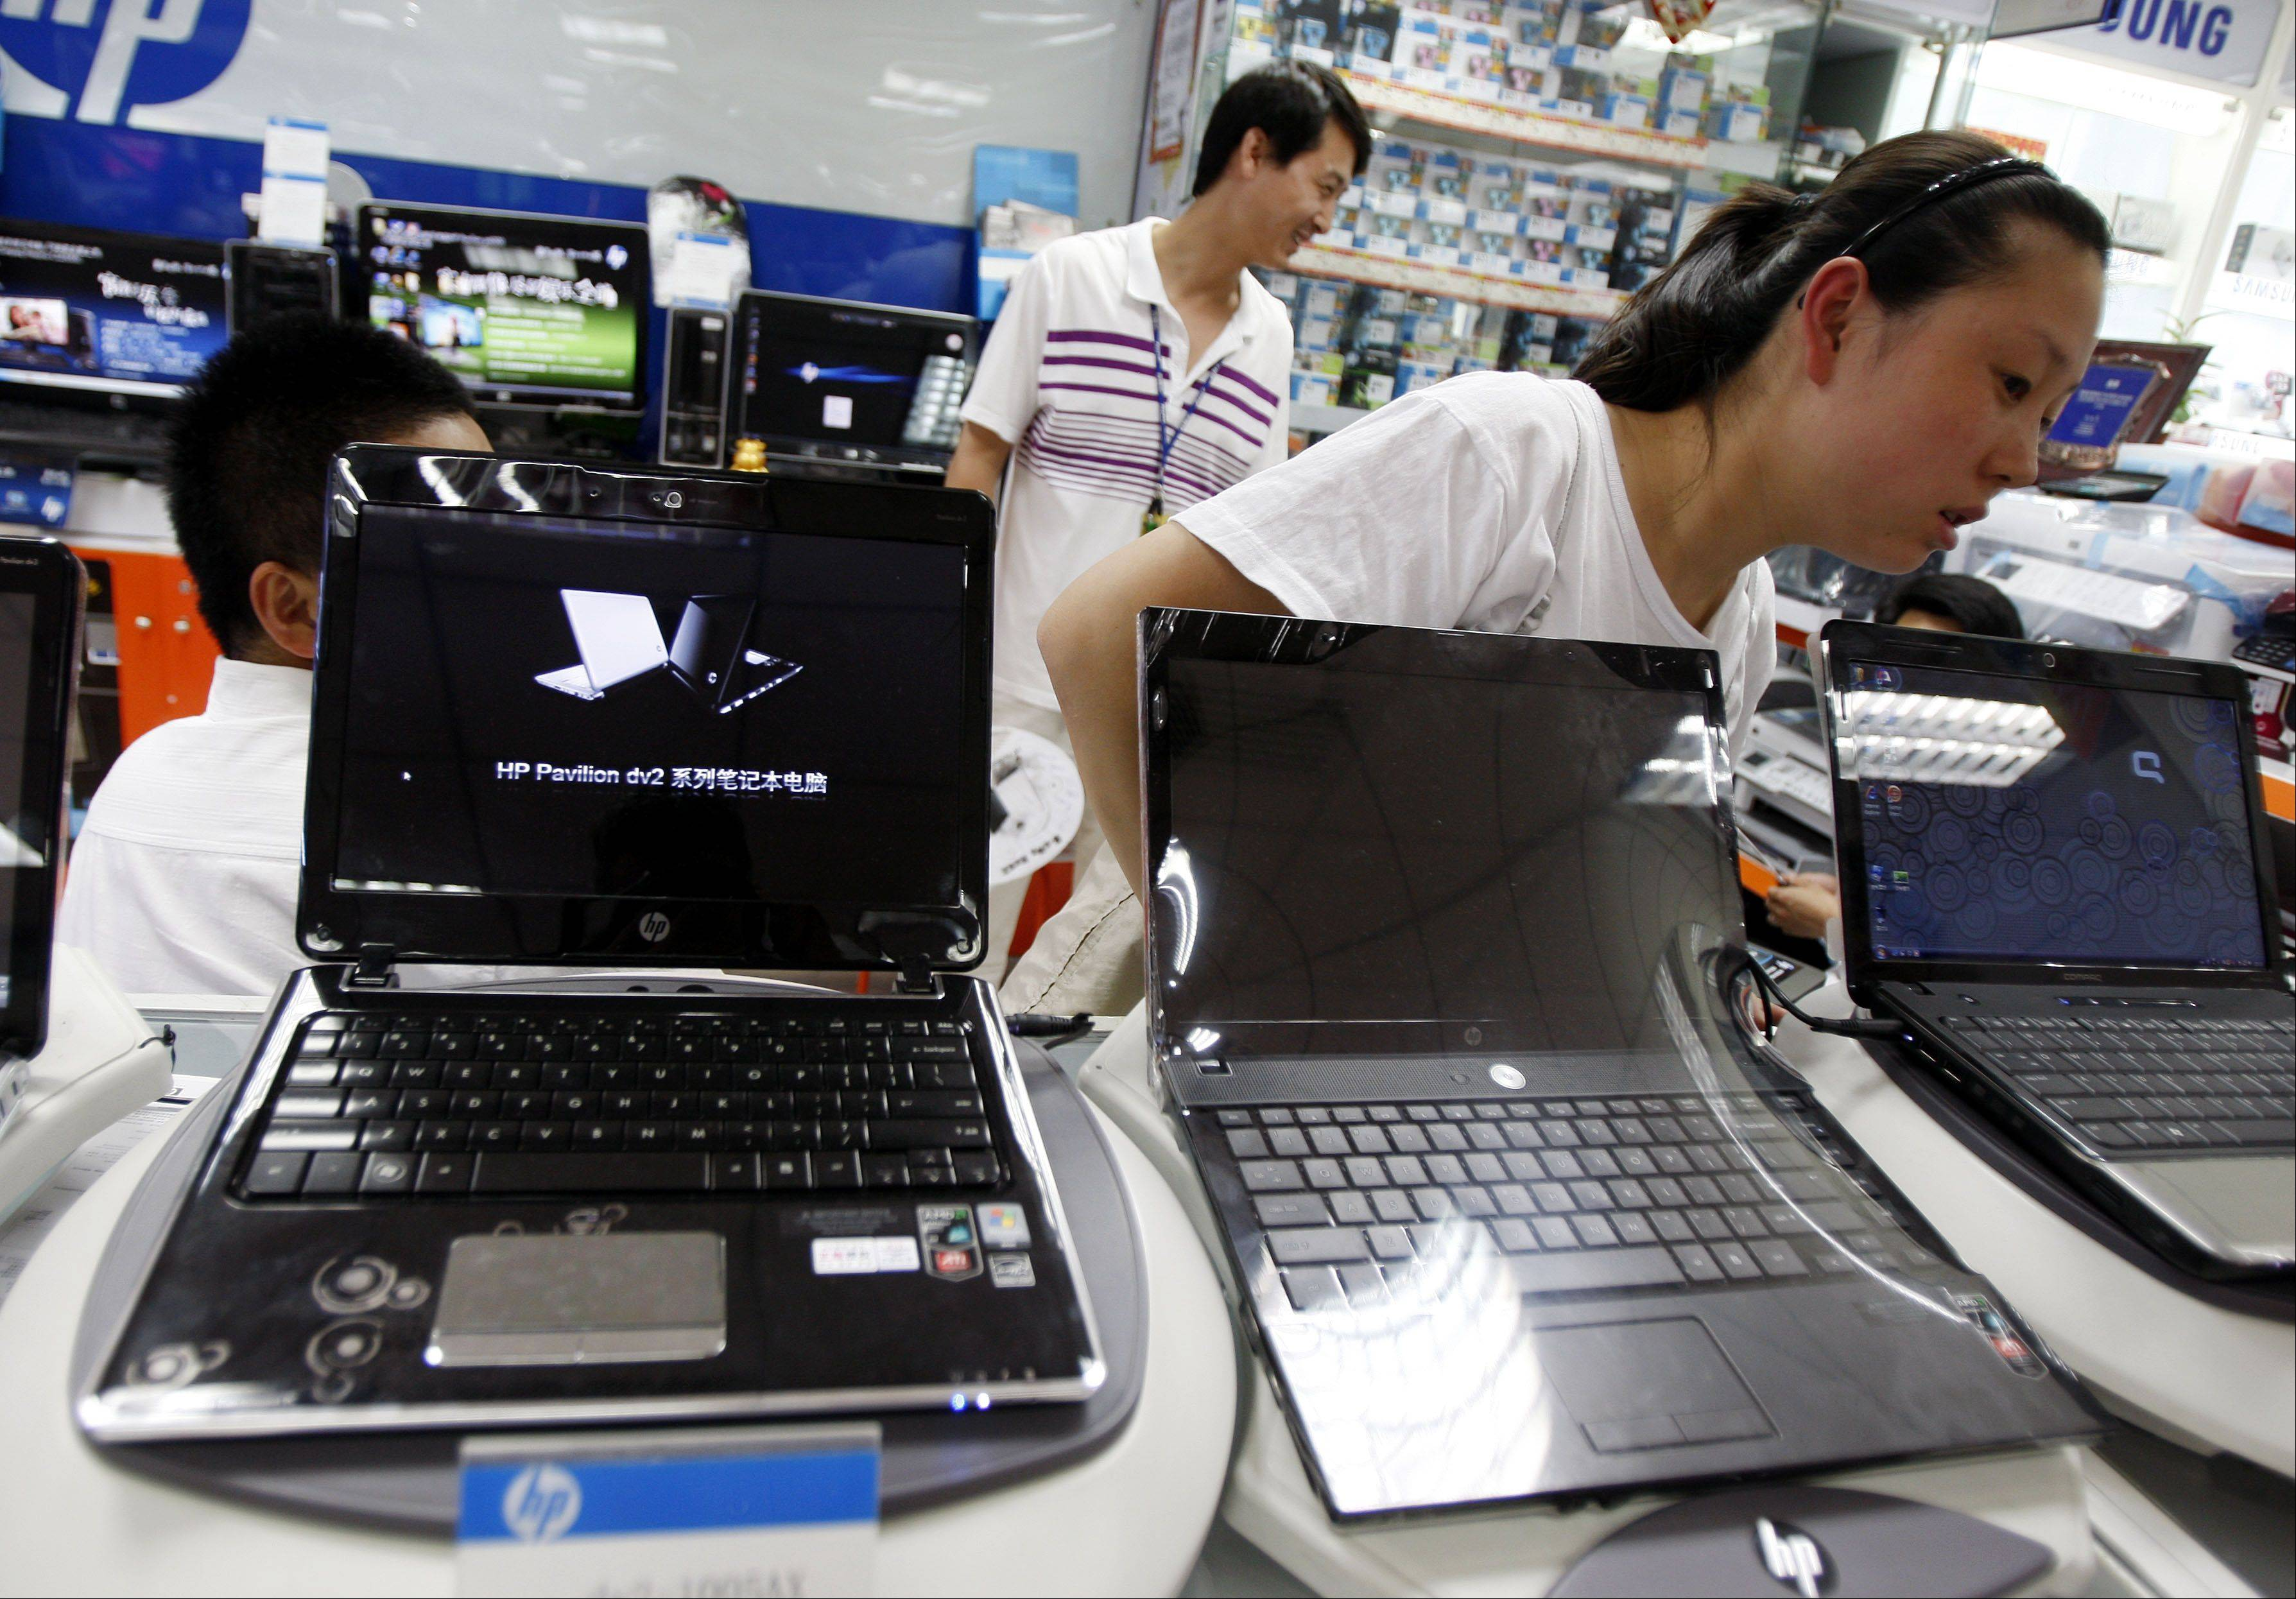 Sales staff stand behind computers in a store in Beijing, China.